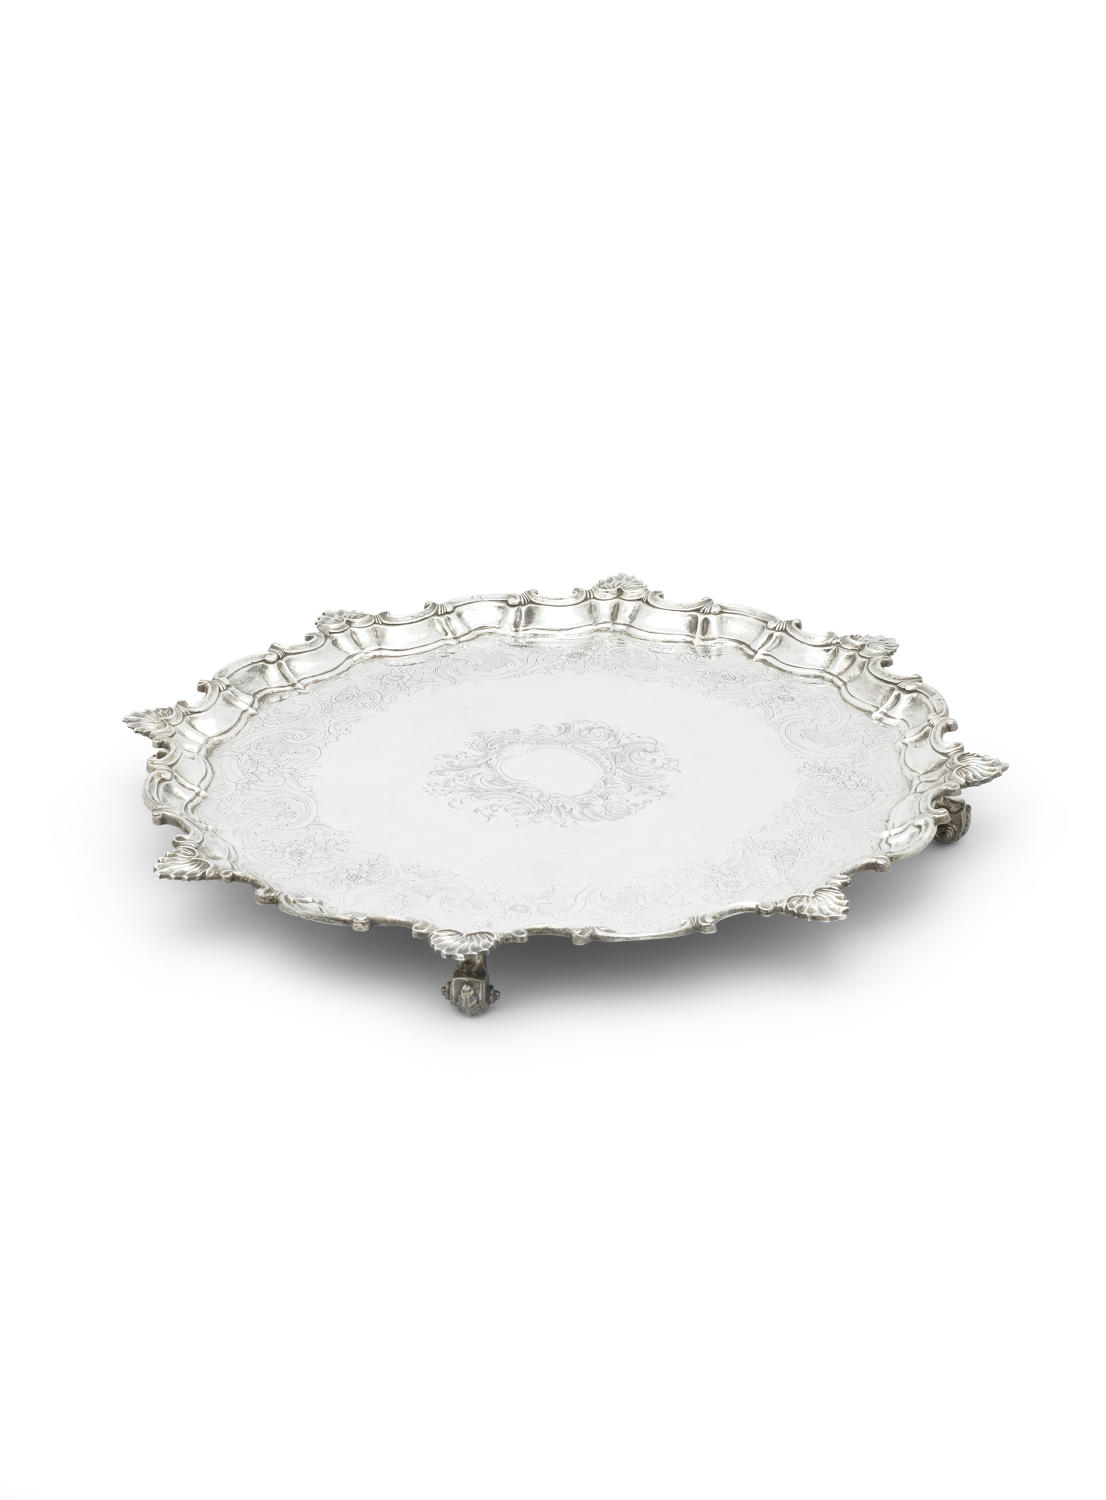 A Large George II silver Salver,London 1752